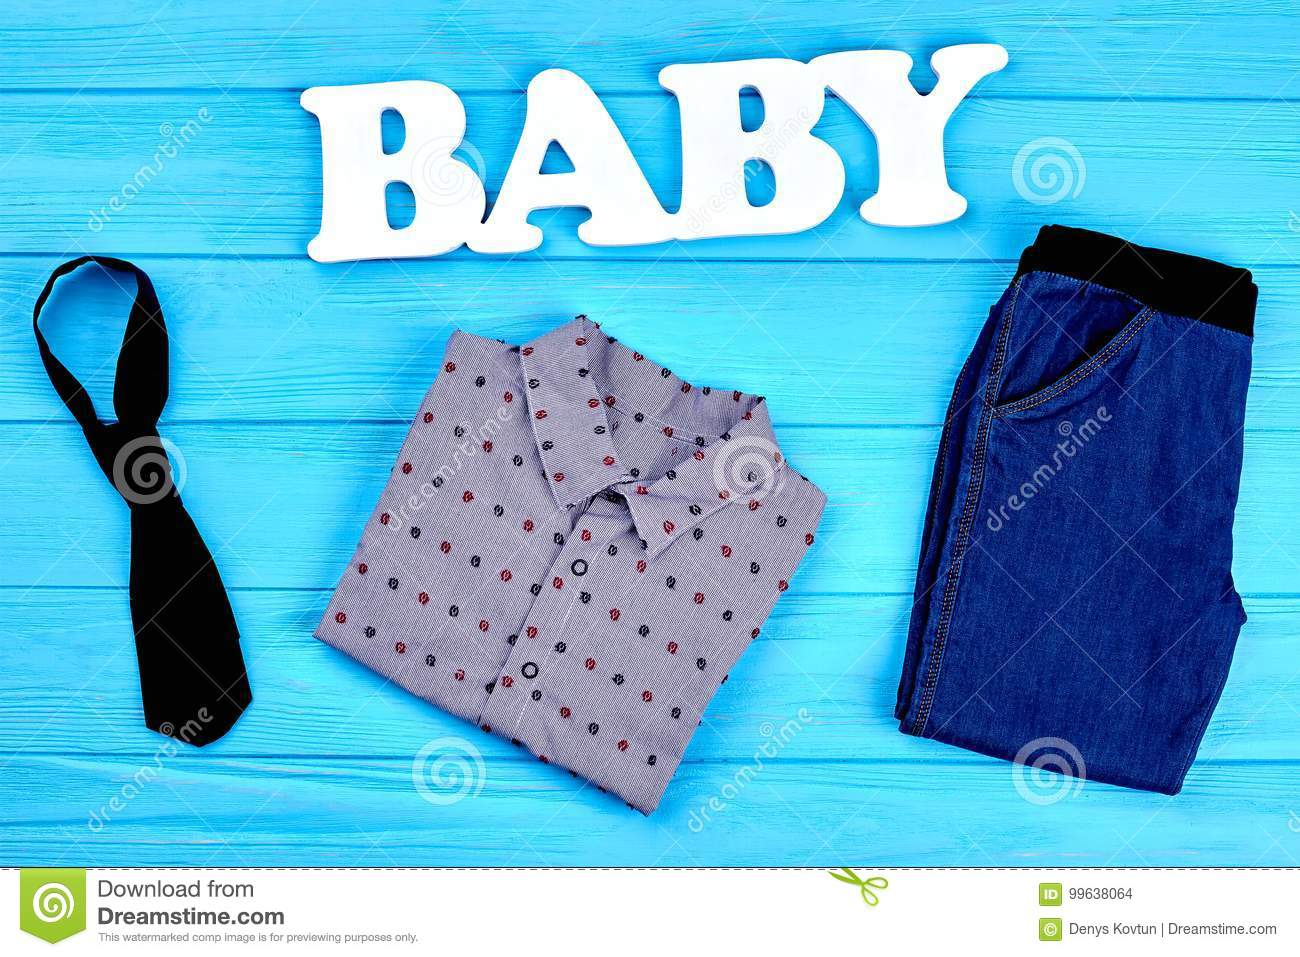 e72bb7455 Baby-boy Modern Clothes Background. Stock Photo - Image of attire ...